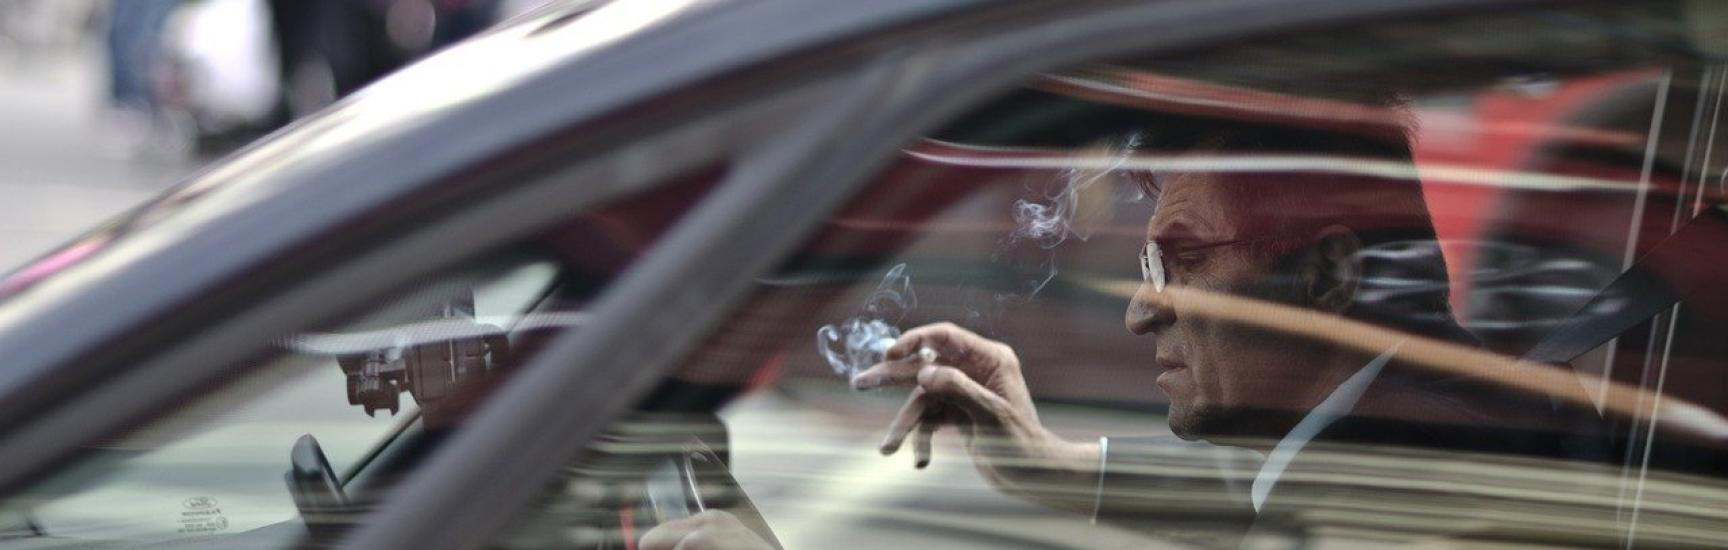 man with a cigarette driving a car